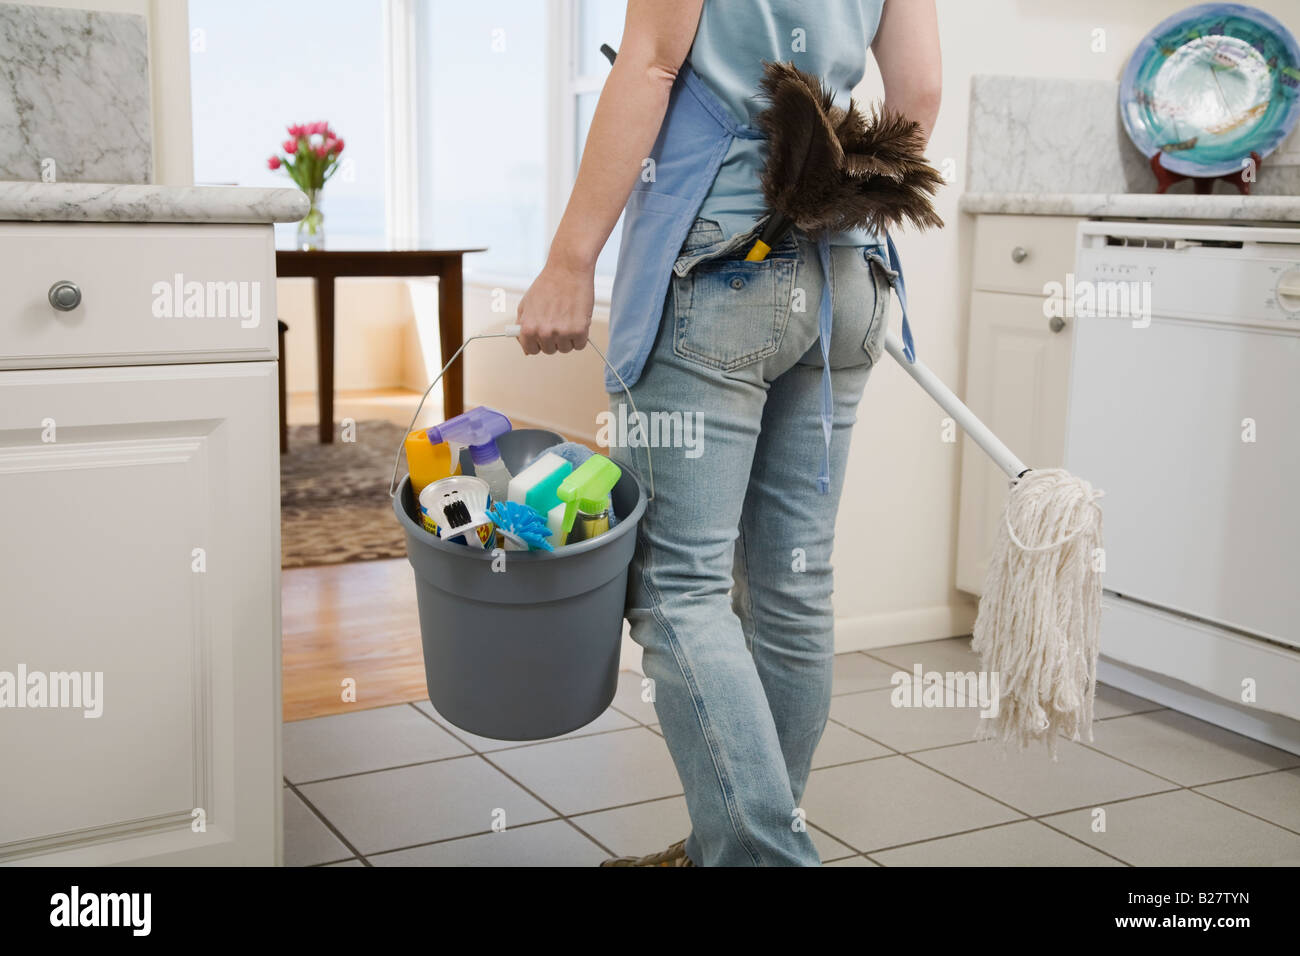 Woman holding mop and cleaning supplies - Stock Image